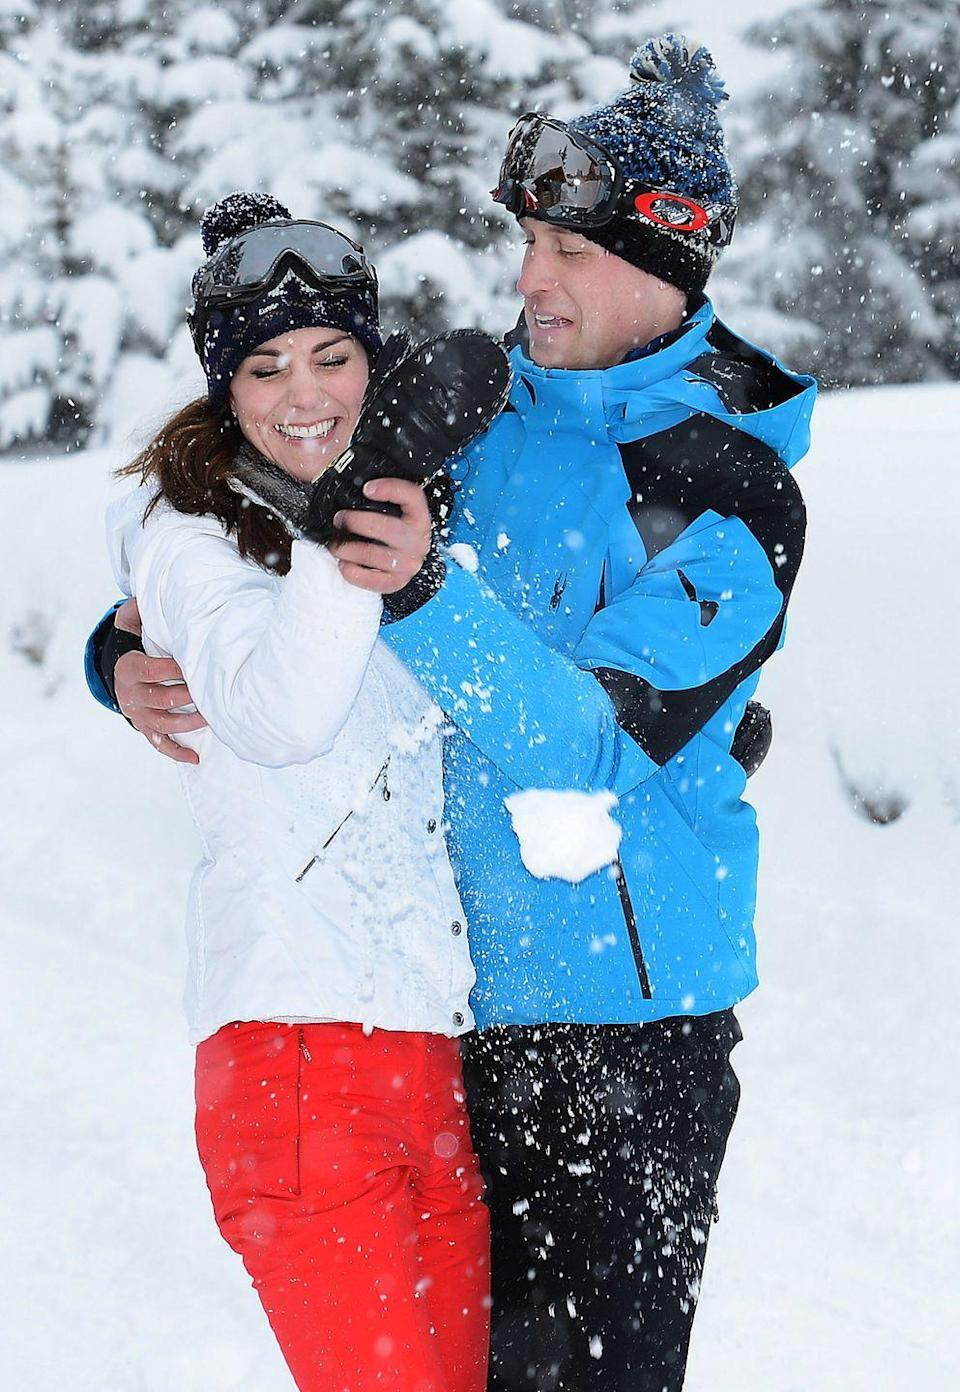 "<p>The royal couple <a href=""https://www.townandcountrymag.com/society/tradition/g26116256/royal-family-snow-photos/"" rel=""nofollow noopener"" target=""_blank"" data-ylk=""slk:enjoy a skiing trip"" class=""link rapid-noclick-resp"">enjoy a skiing trip</a> in the French Alps.<br></p>"